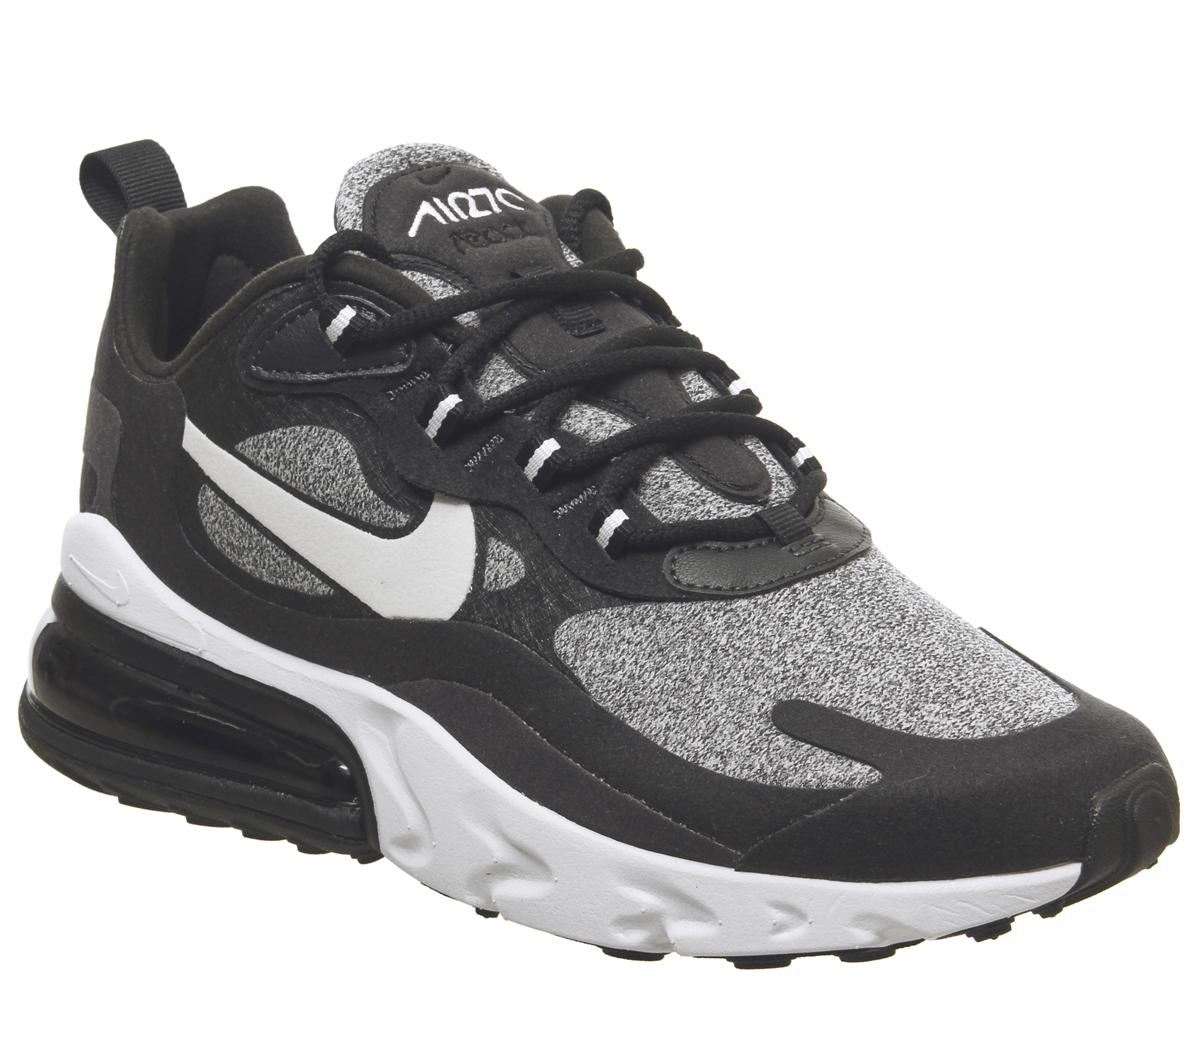 great deals 2017 detailed look 100% high quality Nike Air Max 270 React Trainers Black Vast Grey Off Noir - Hers ...